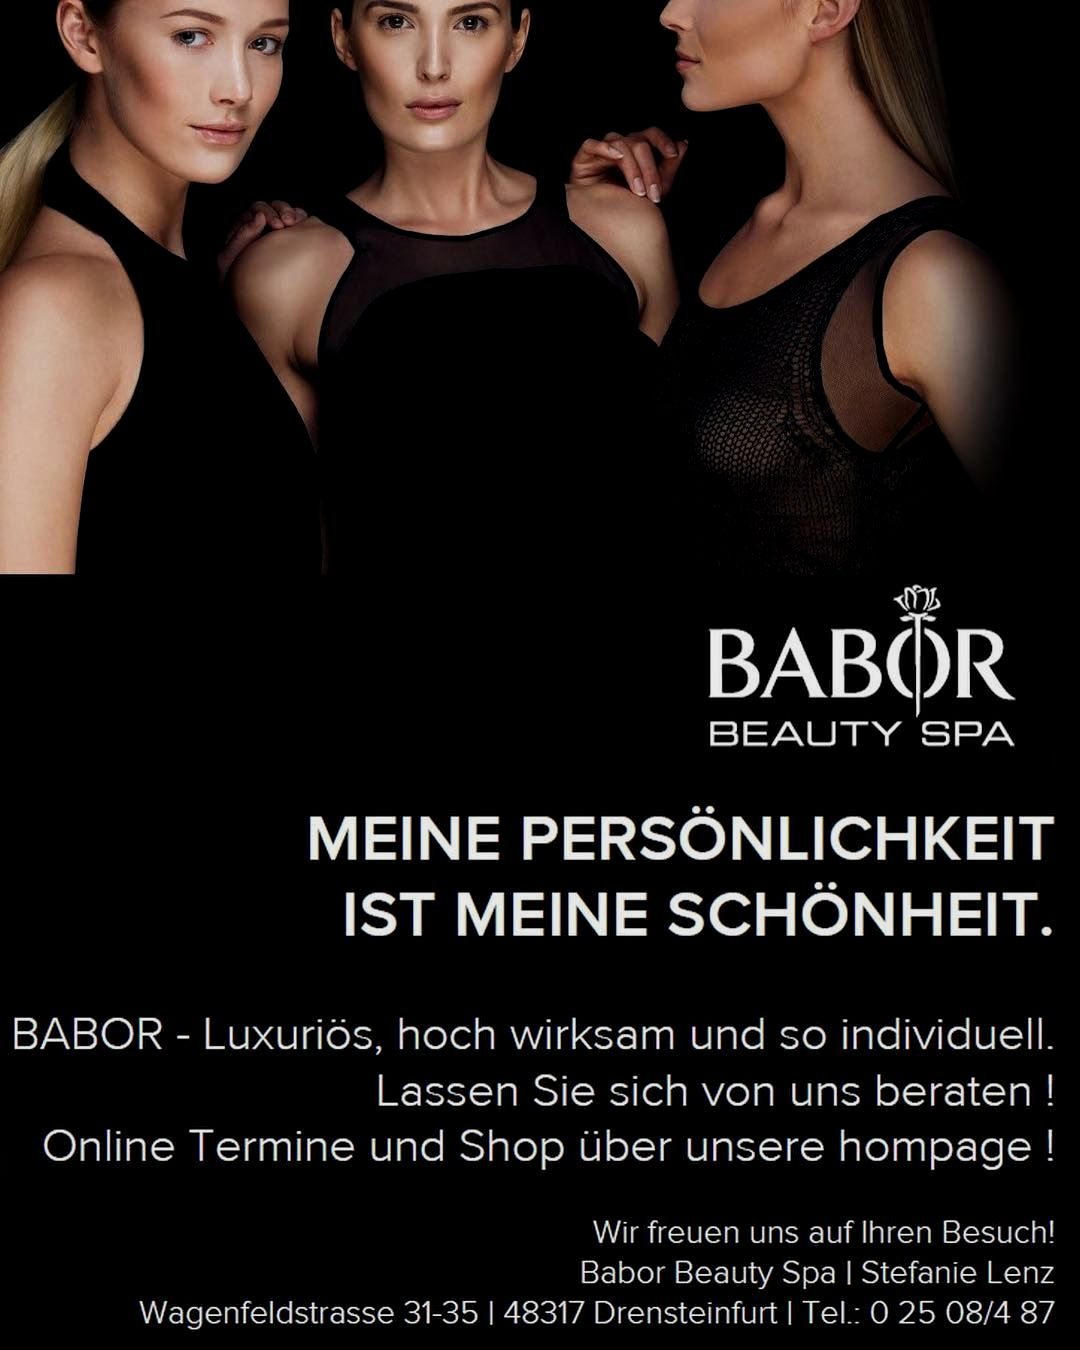 BABOR Beauty Spa Stefanie Lenz